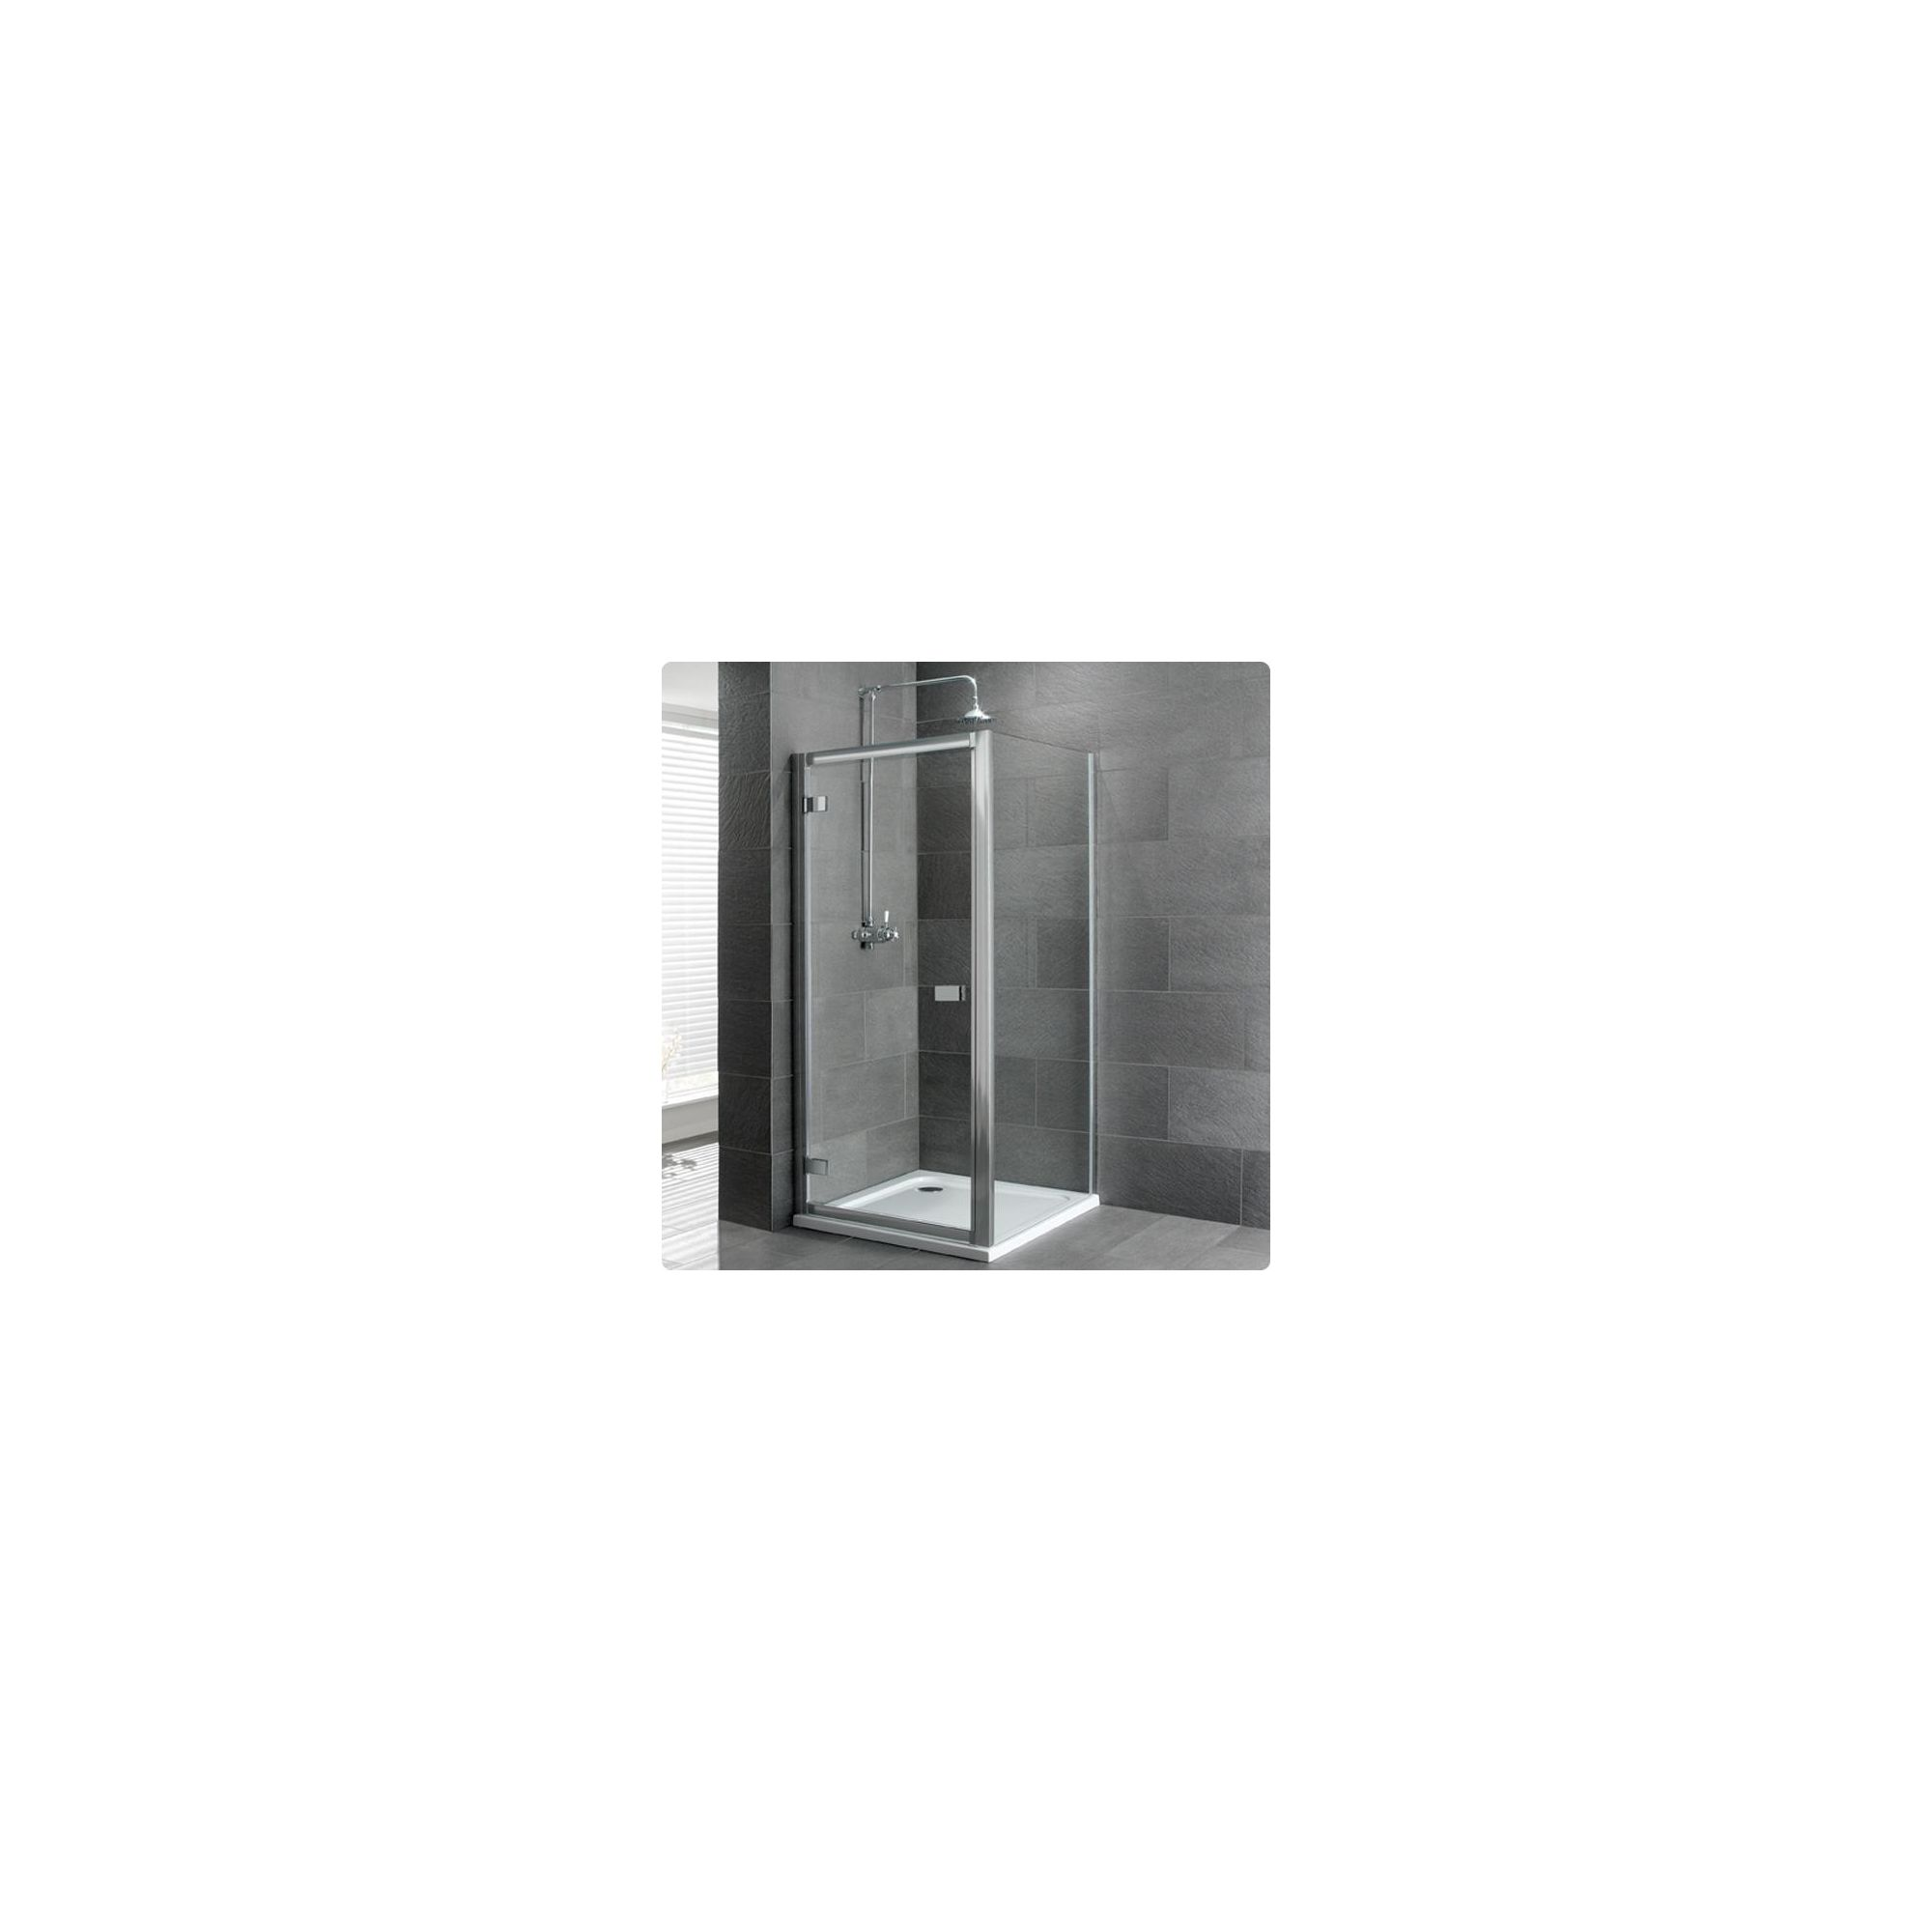 Duchy Select Silver Hinged Door Shower Enclosure, 1000mm x 800mm, Standard Tray, 6mm Glass at Tesco Direct